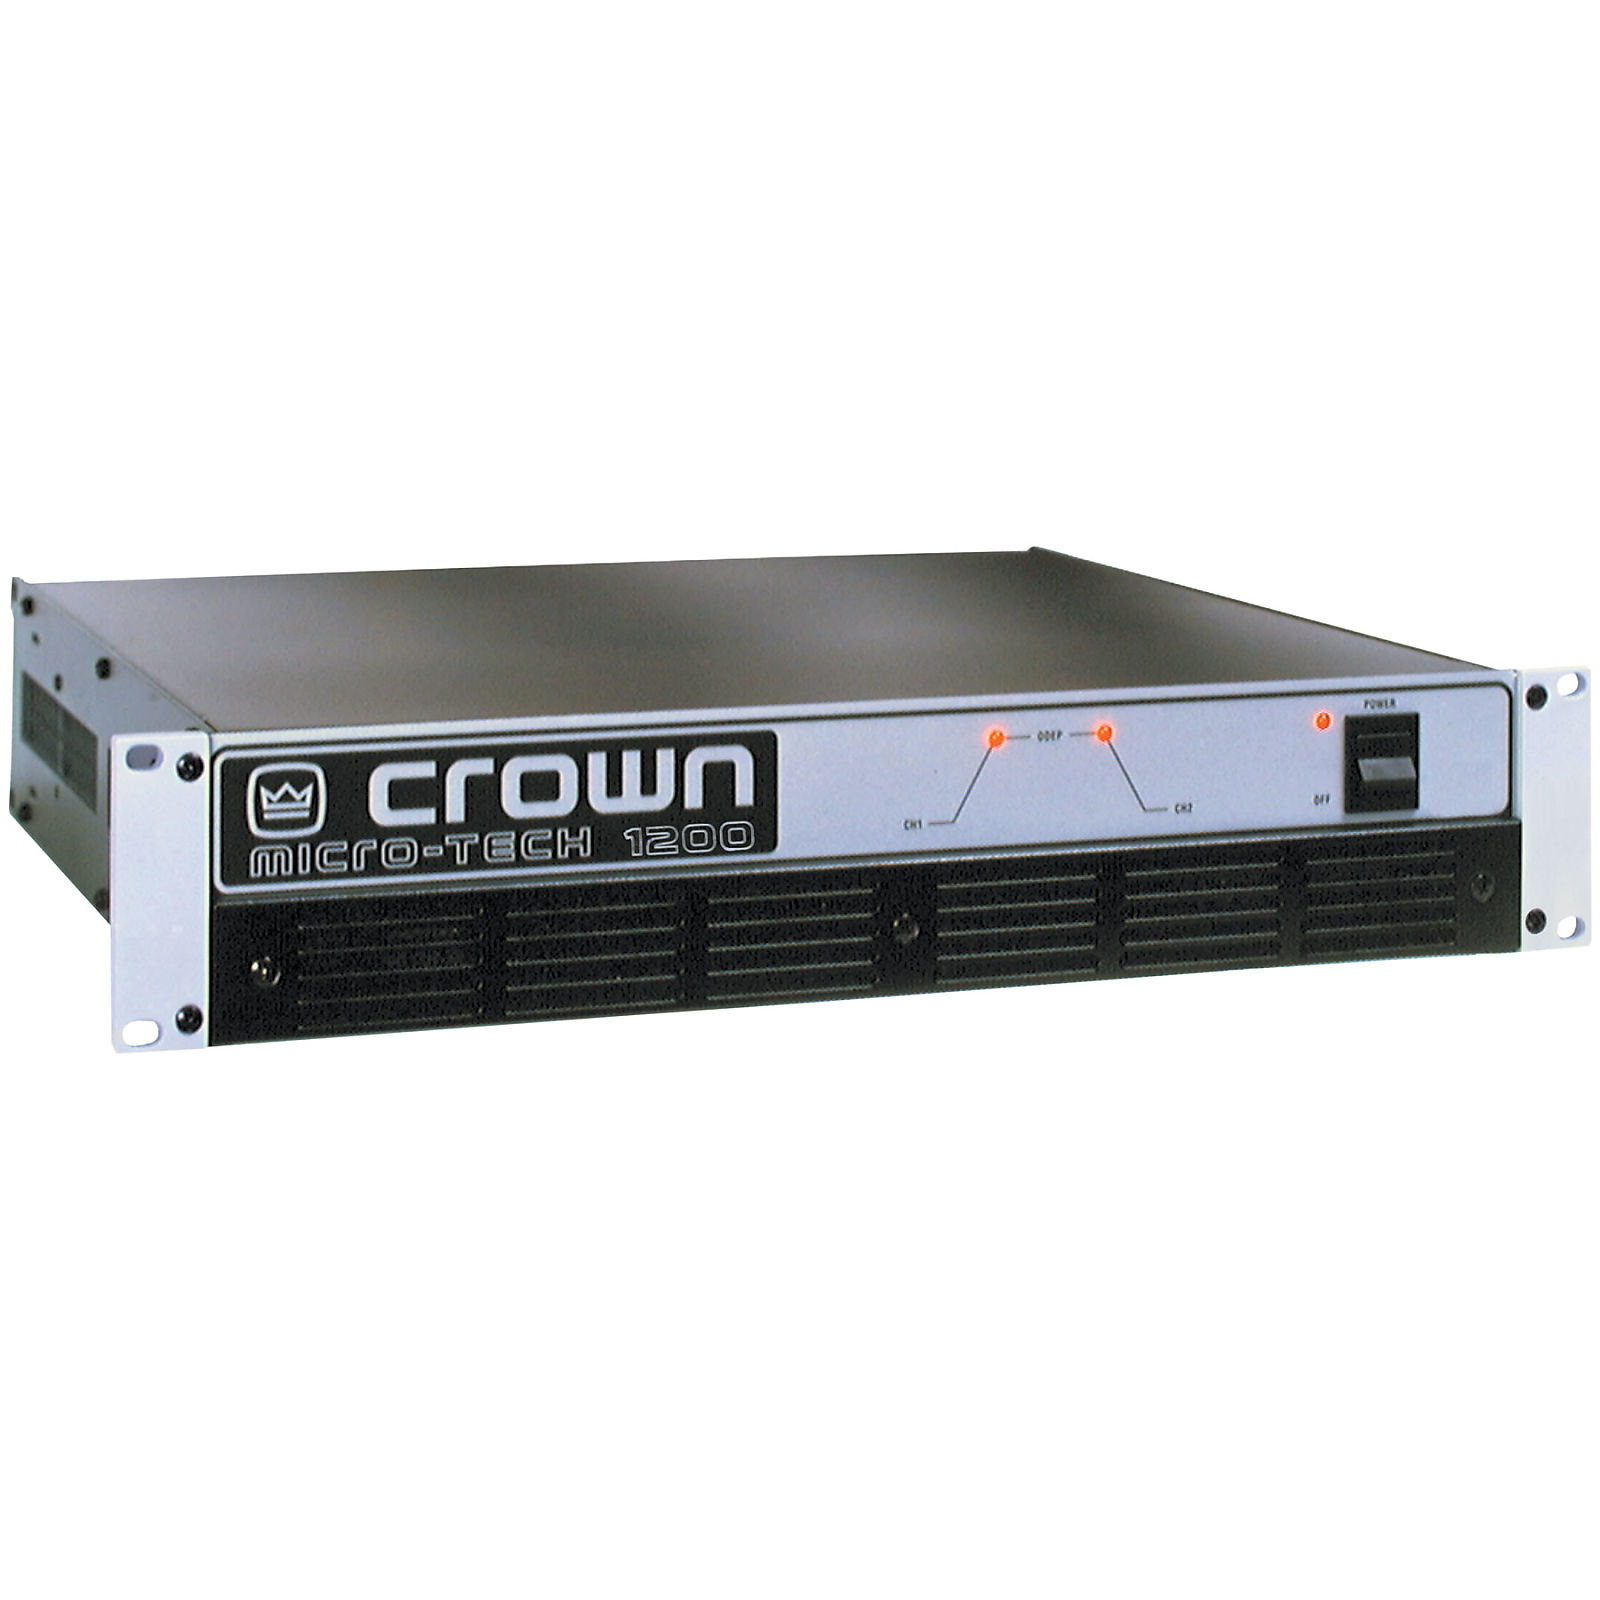 crown micro tech 1200 power amplifier reverb. Black Bedroom Furniture Sets. Home Design Ideas